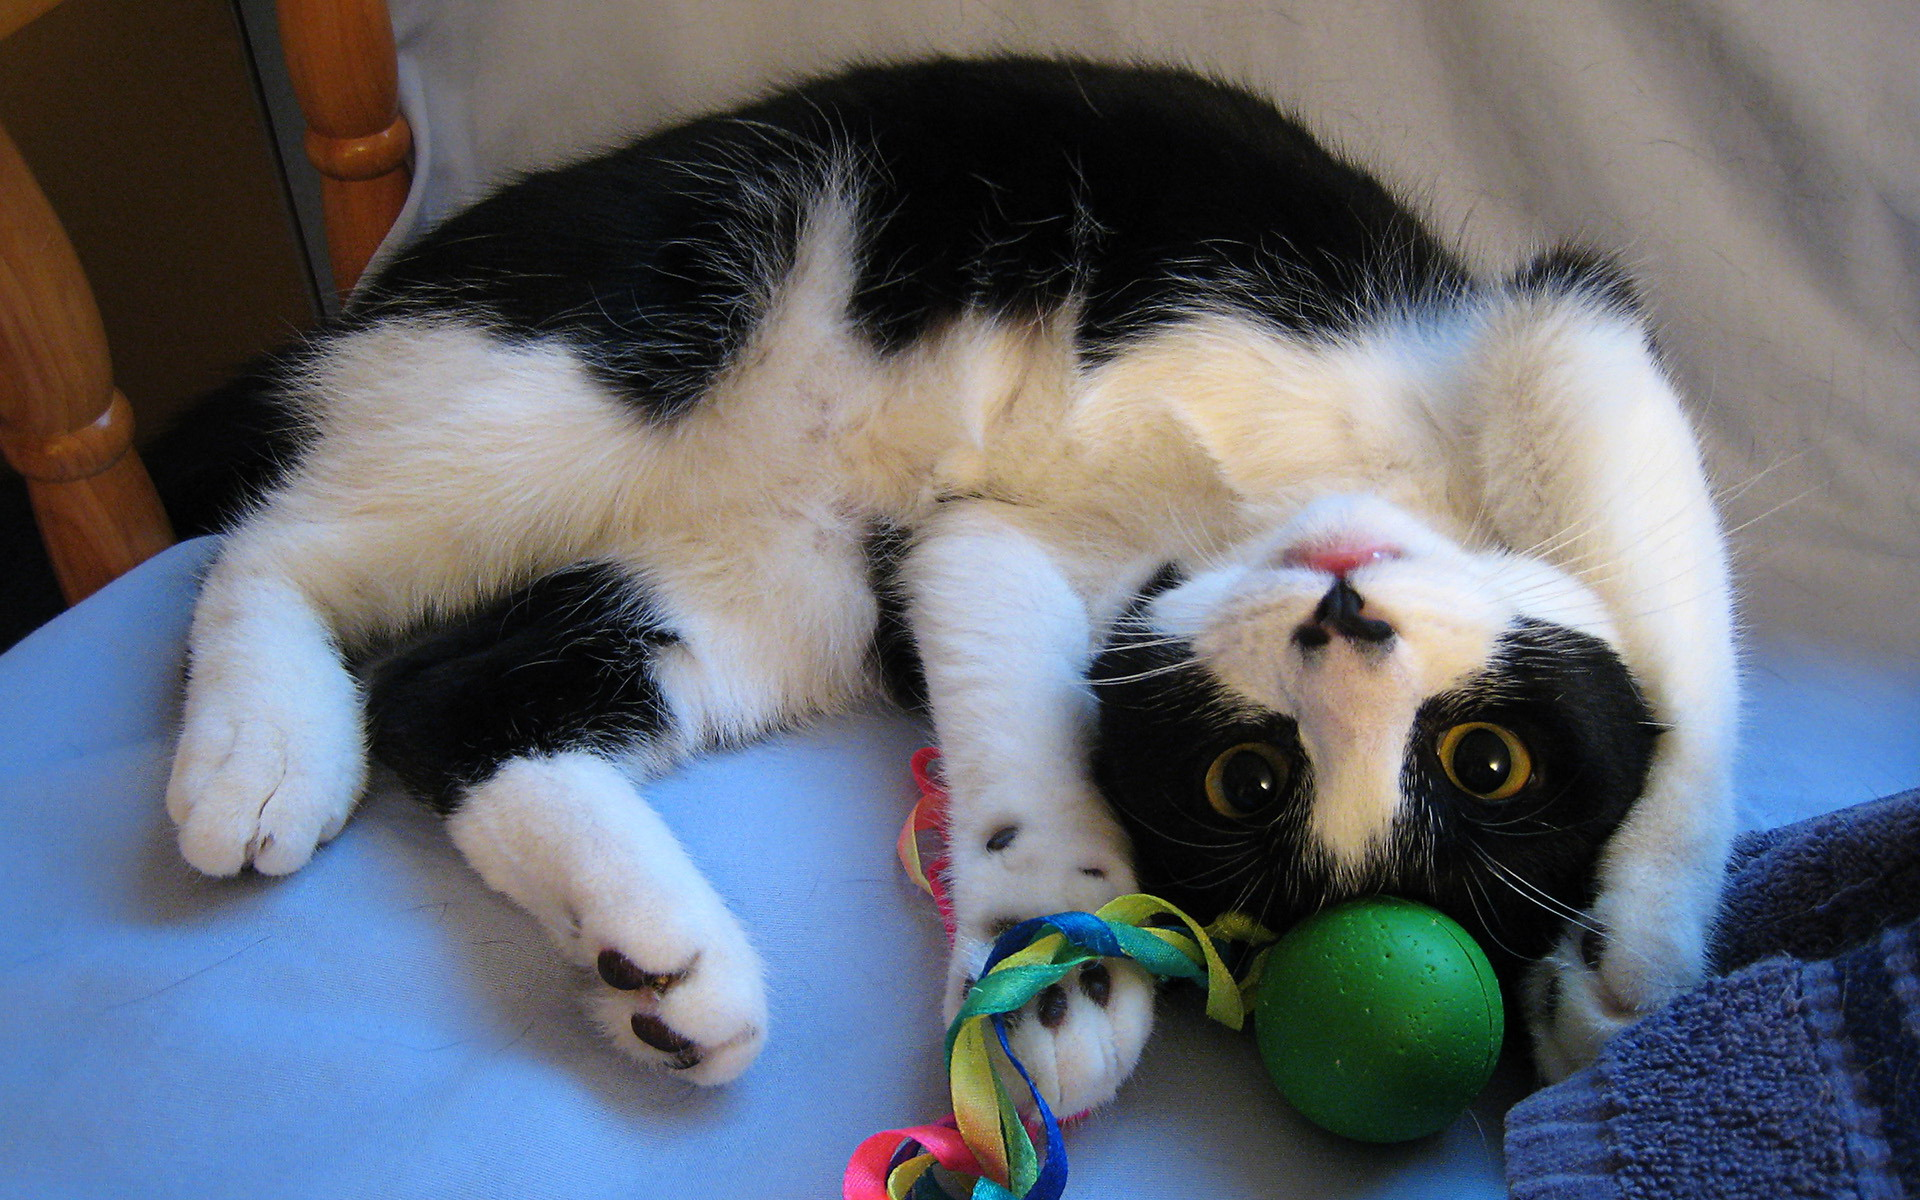 click to free download the wallpaper--Playing Cute Cat, Kitten with a Green Ball, Upside Down 1920X1200 free wallpaper download